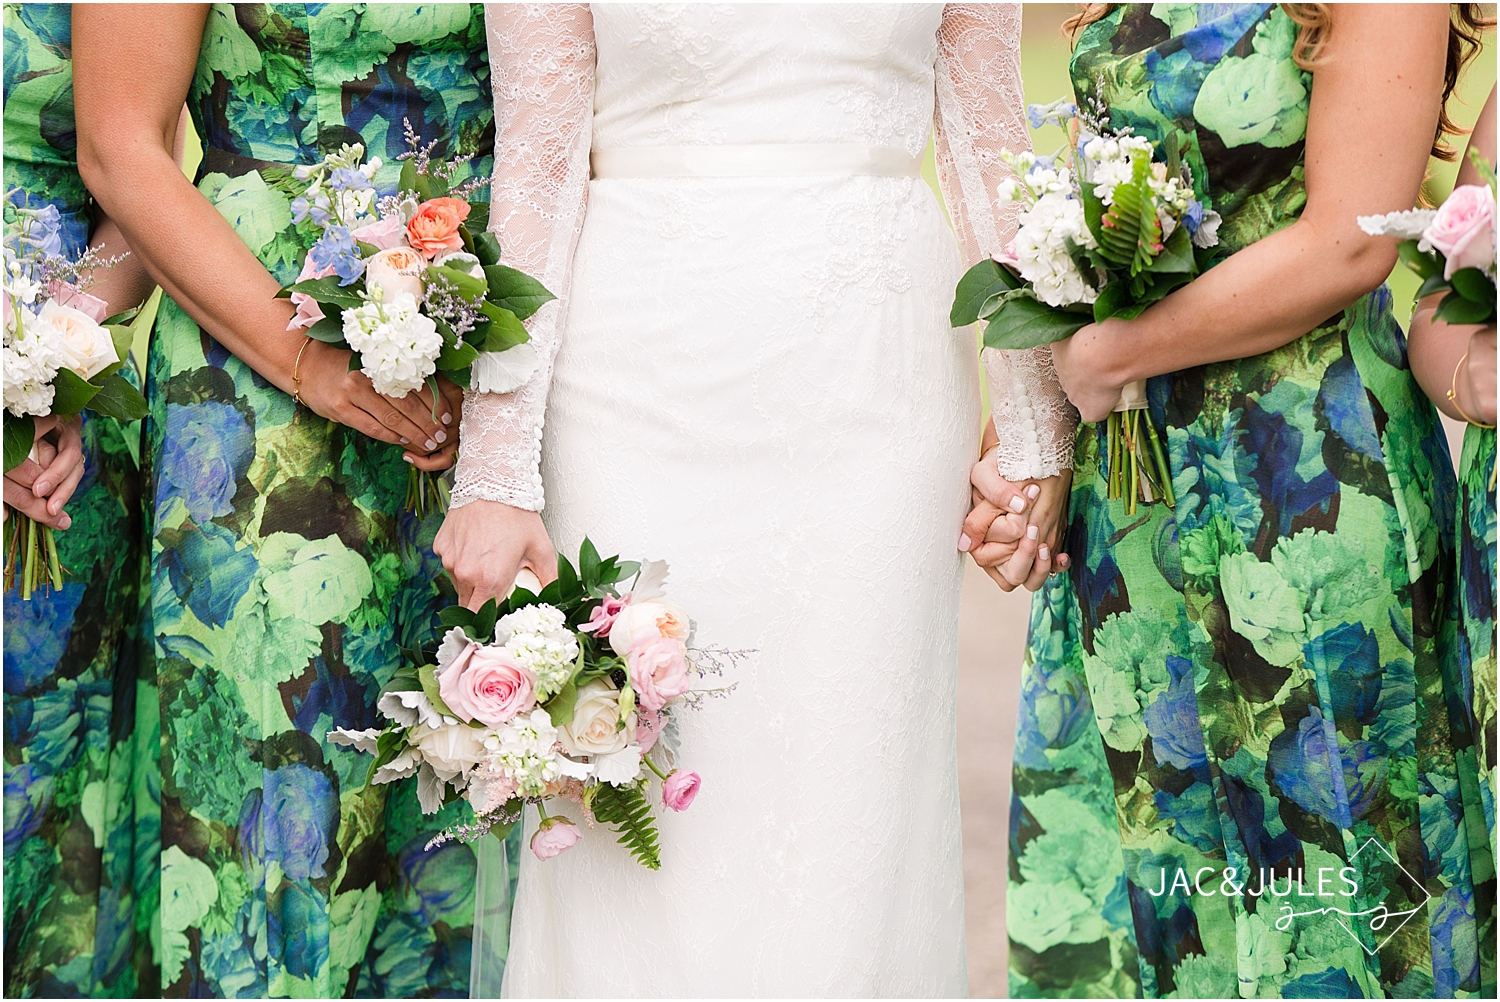 jacnjules photograph bridesmaid dresses in floral prints at Allaire wedding